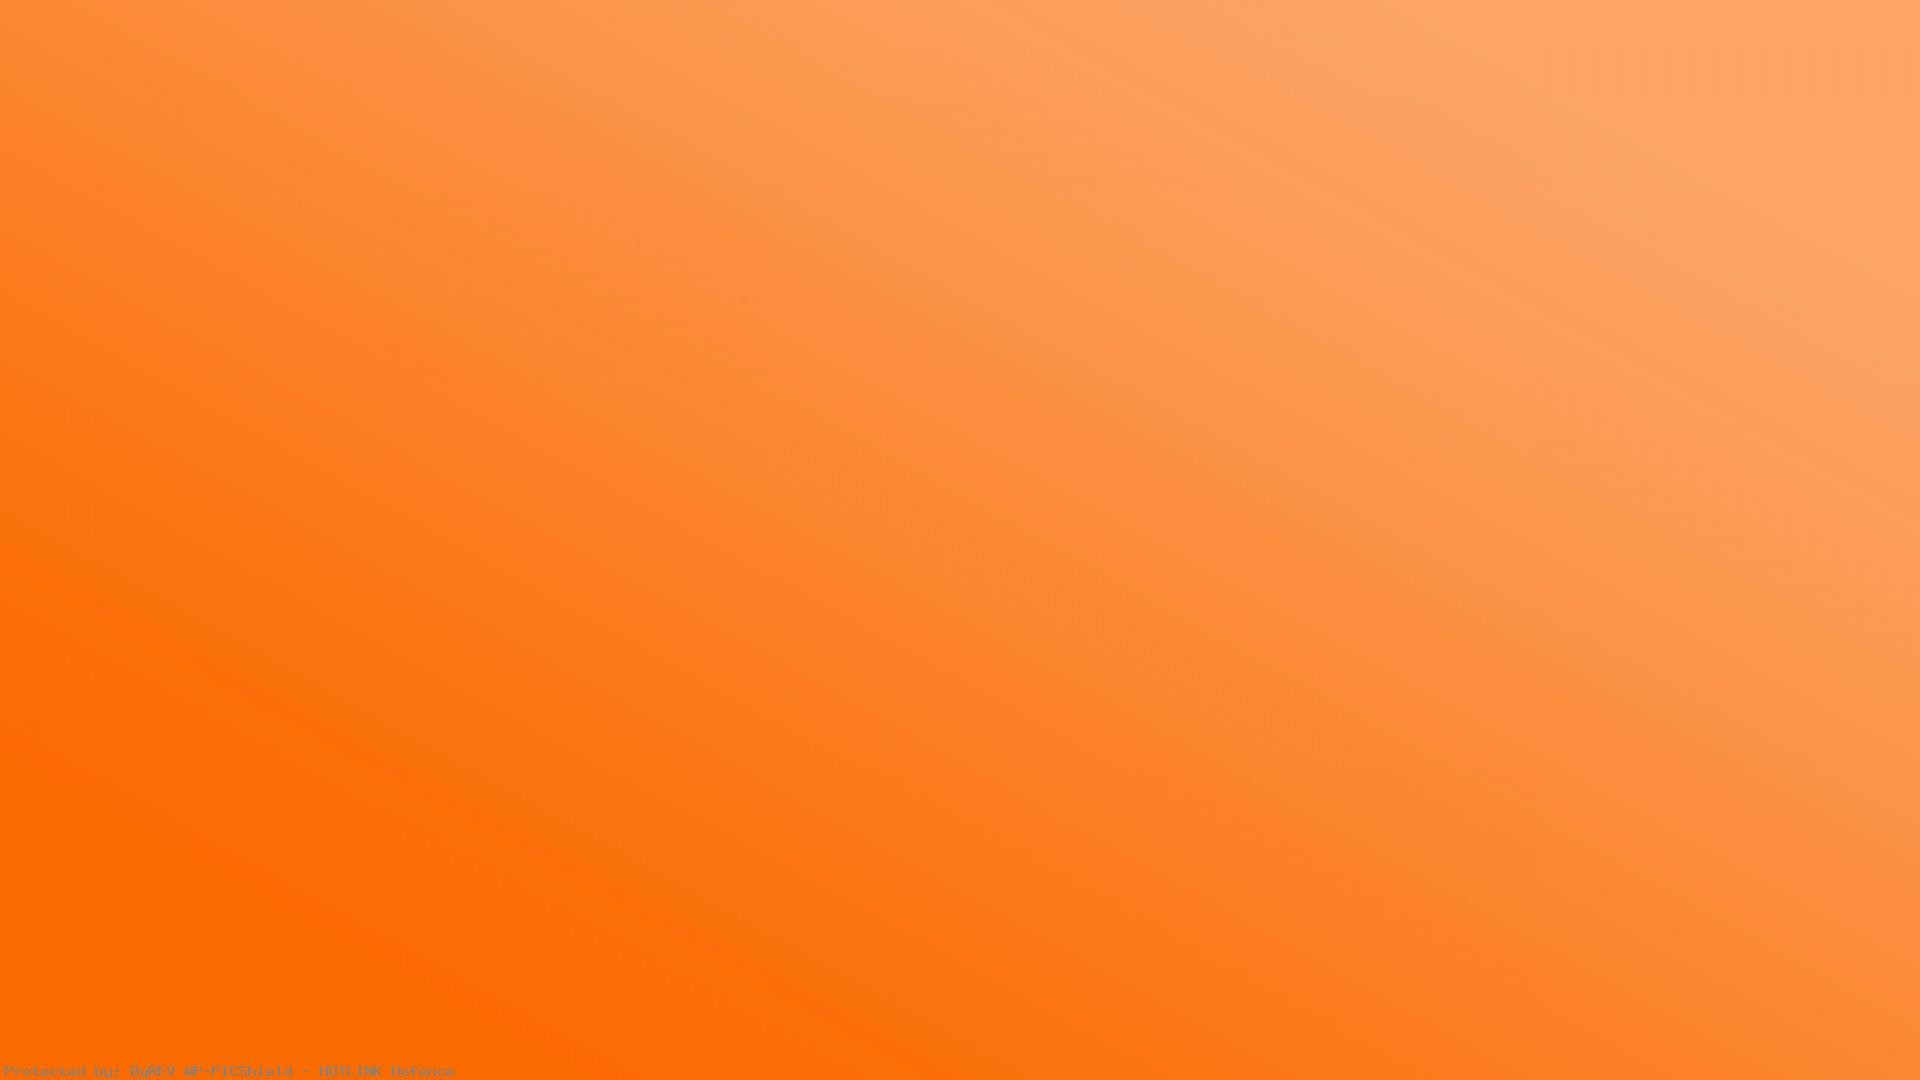 1920x1080 Full-HD-1080p-Orange-HD-Desktop-Backgrounds--